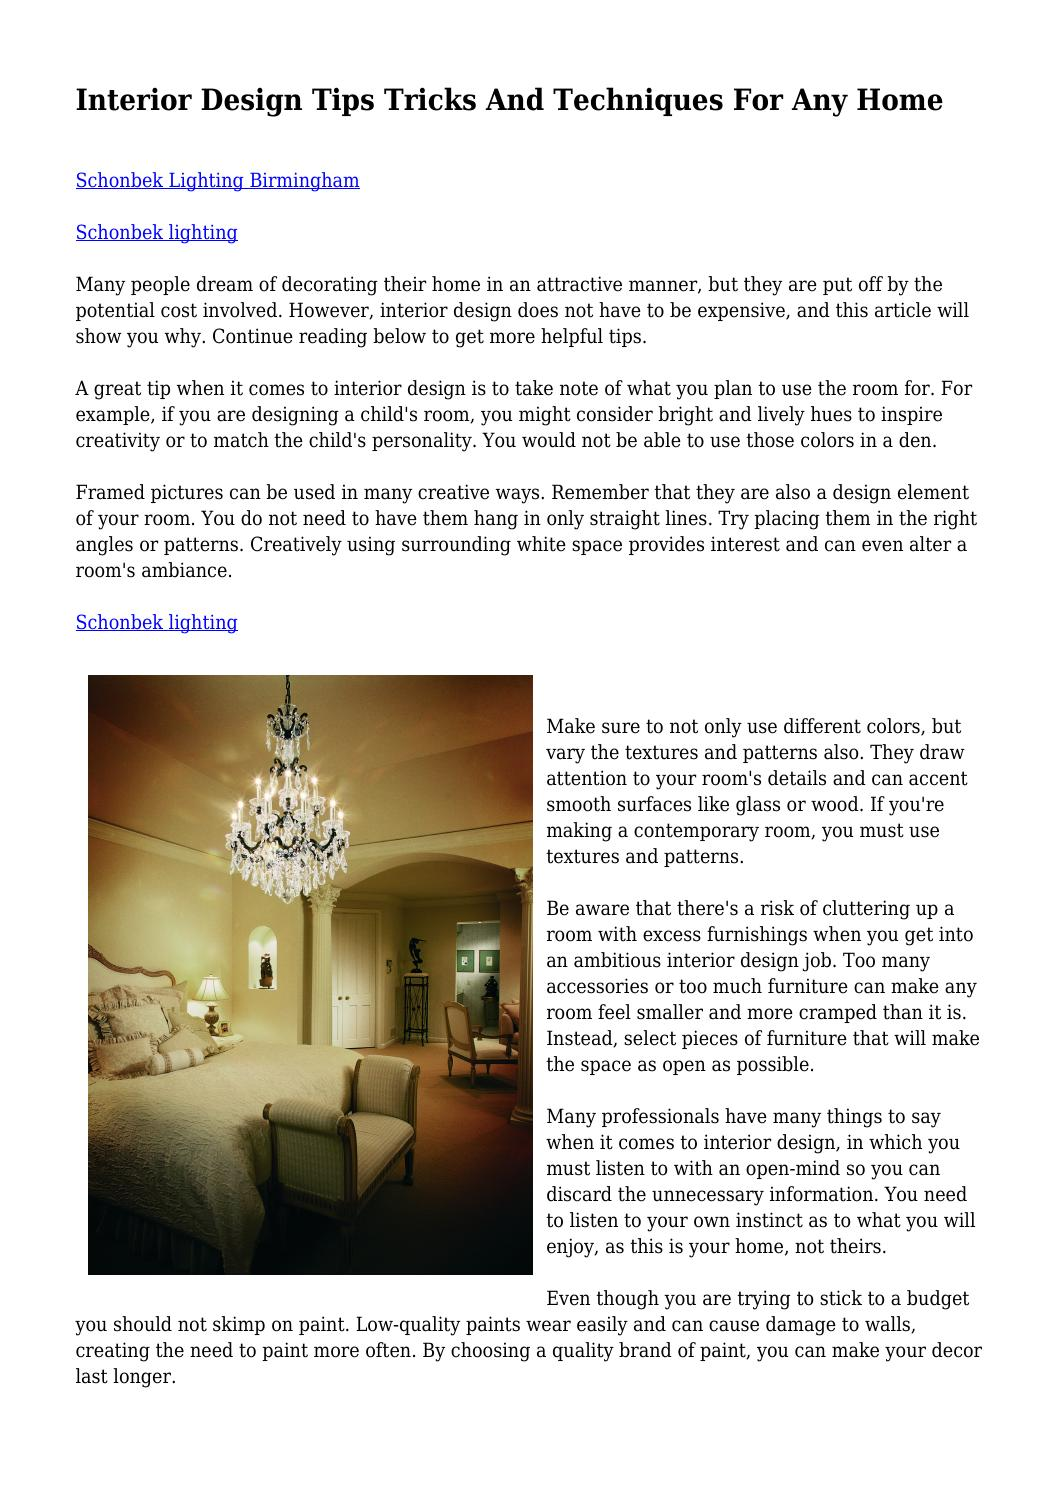 Interior Design Tips Tricks And Techniques For Any Home By Wendidrahos1981 Issuu